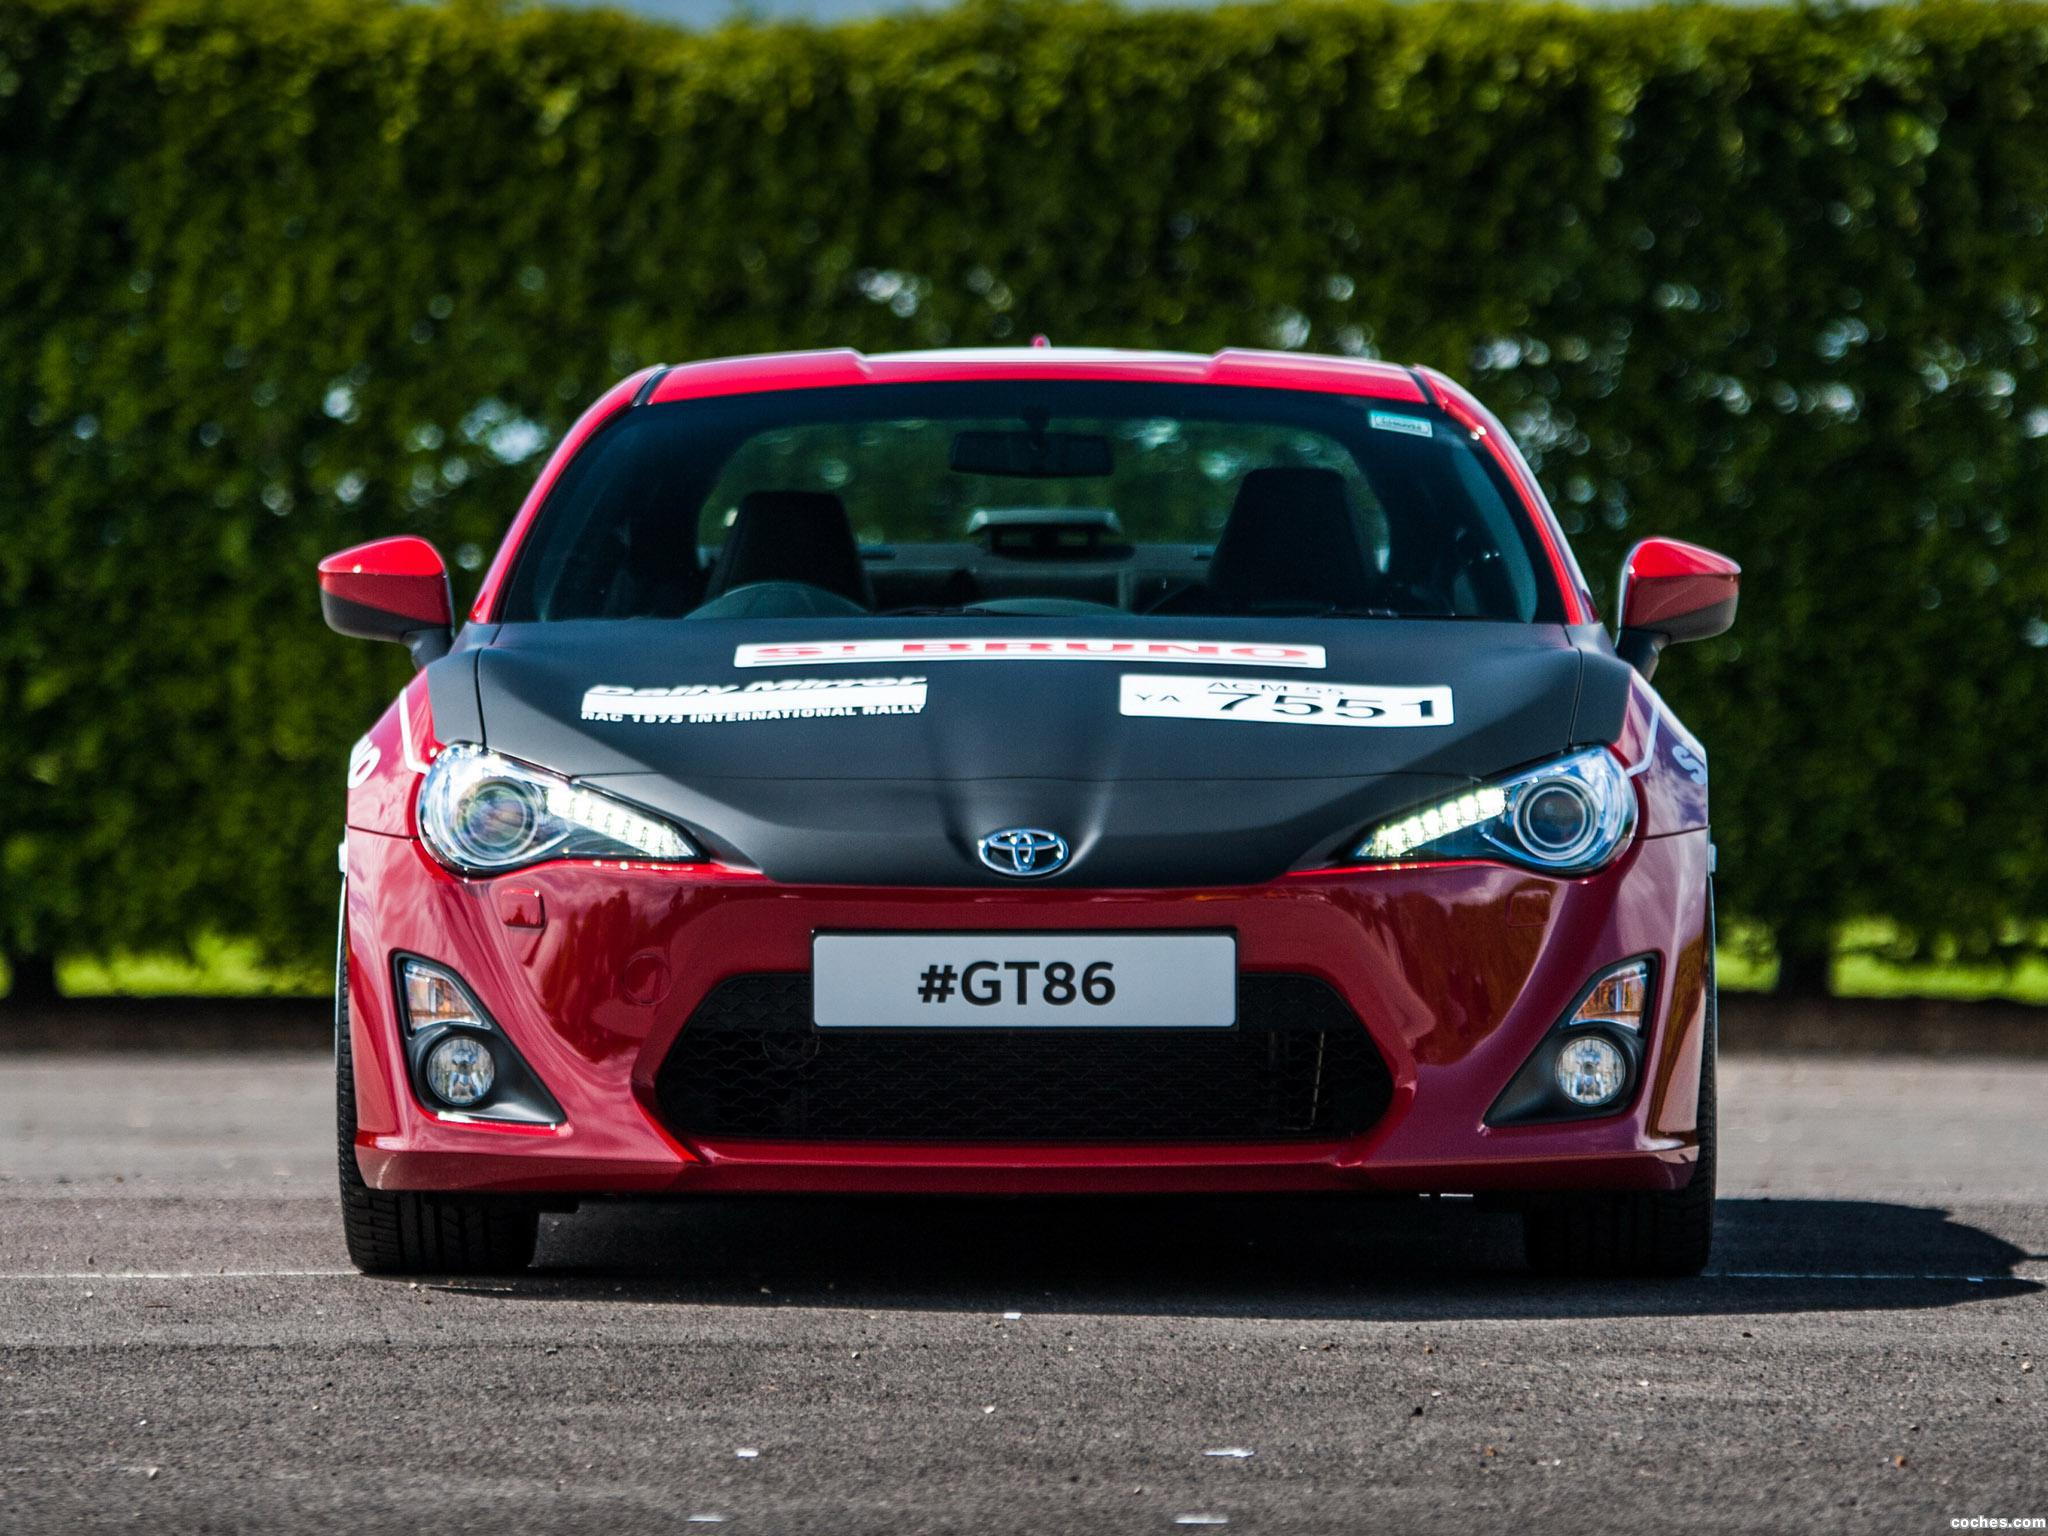 toyota_gt86-ove-andersson-s-toyota-celica-1600gt-2015_r4.jpg